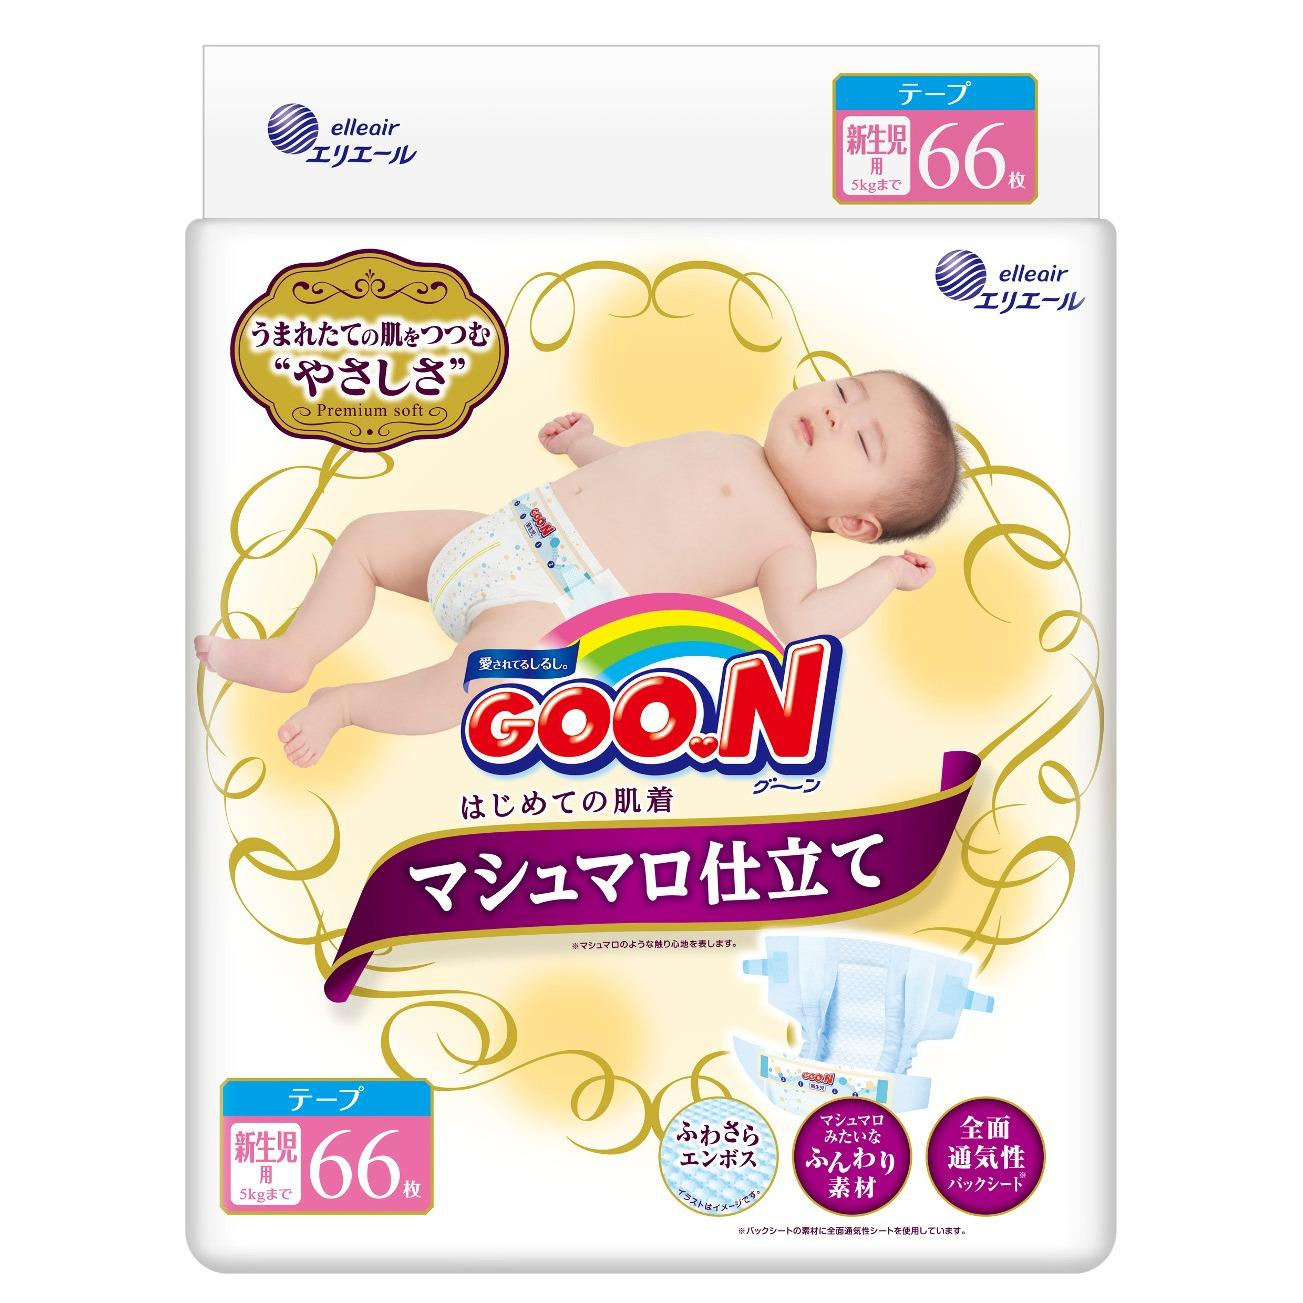 GOO.N Marshmallow Premium Soft Diapers NB66 x 4 Packs